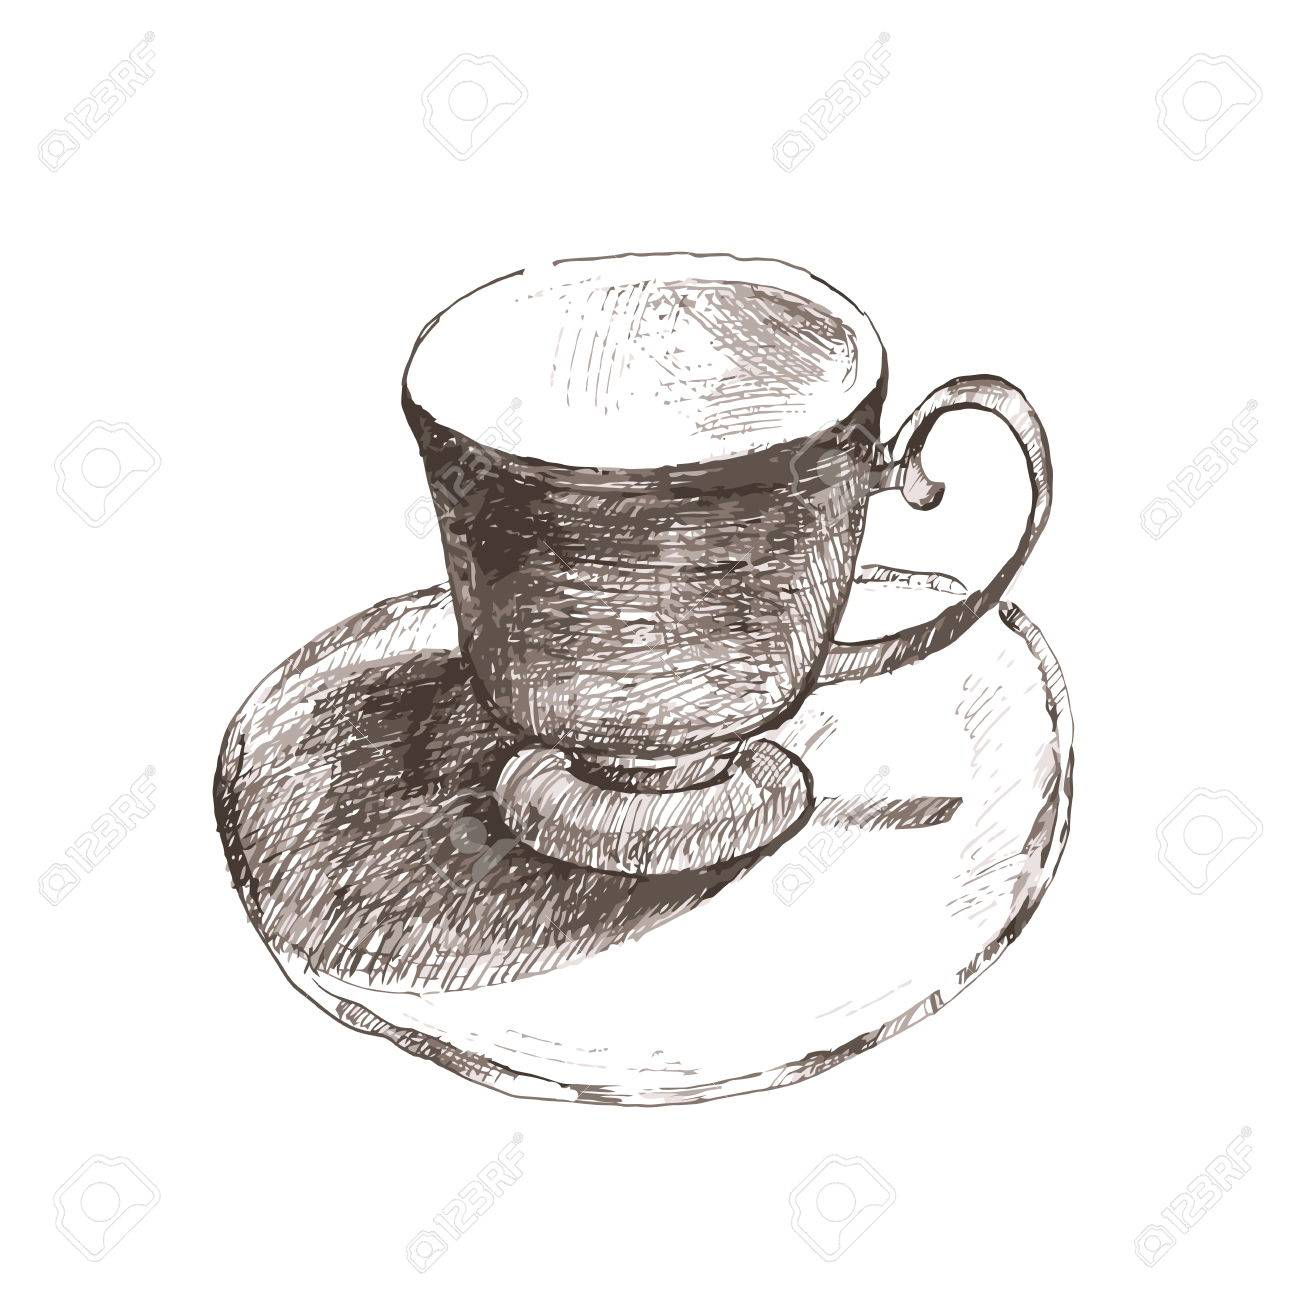 Sketch Cup Elegant Cup And Saucer Retro Ceramics Cup Of Tea Royalty Free Cliparts Vectors And Stock Illustration Image 54550683